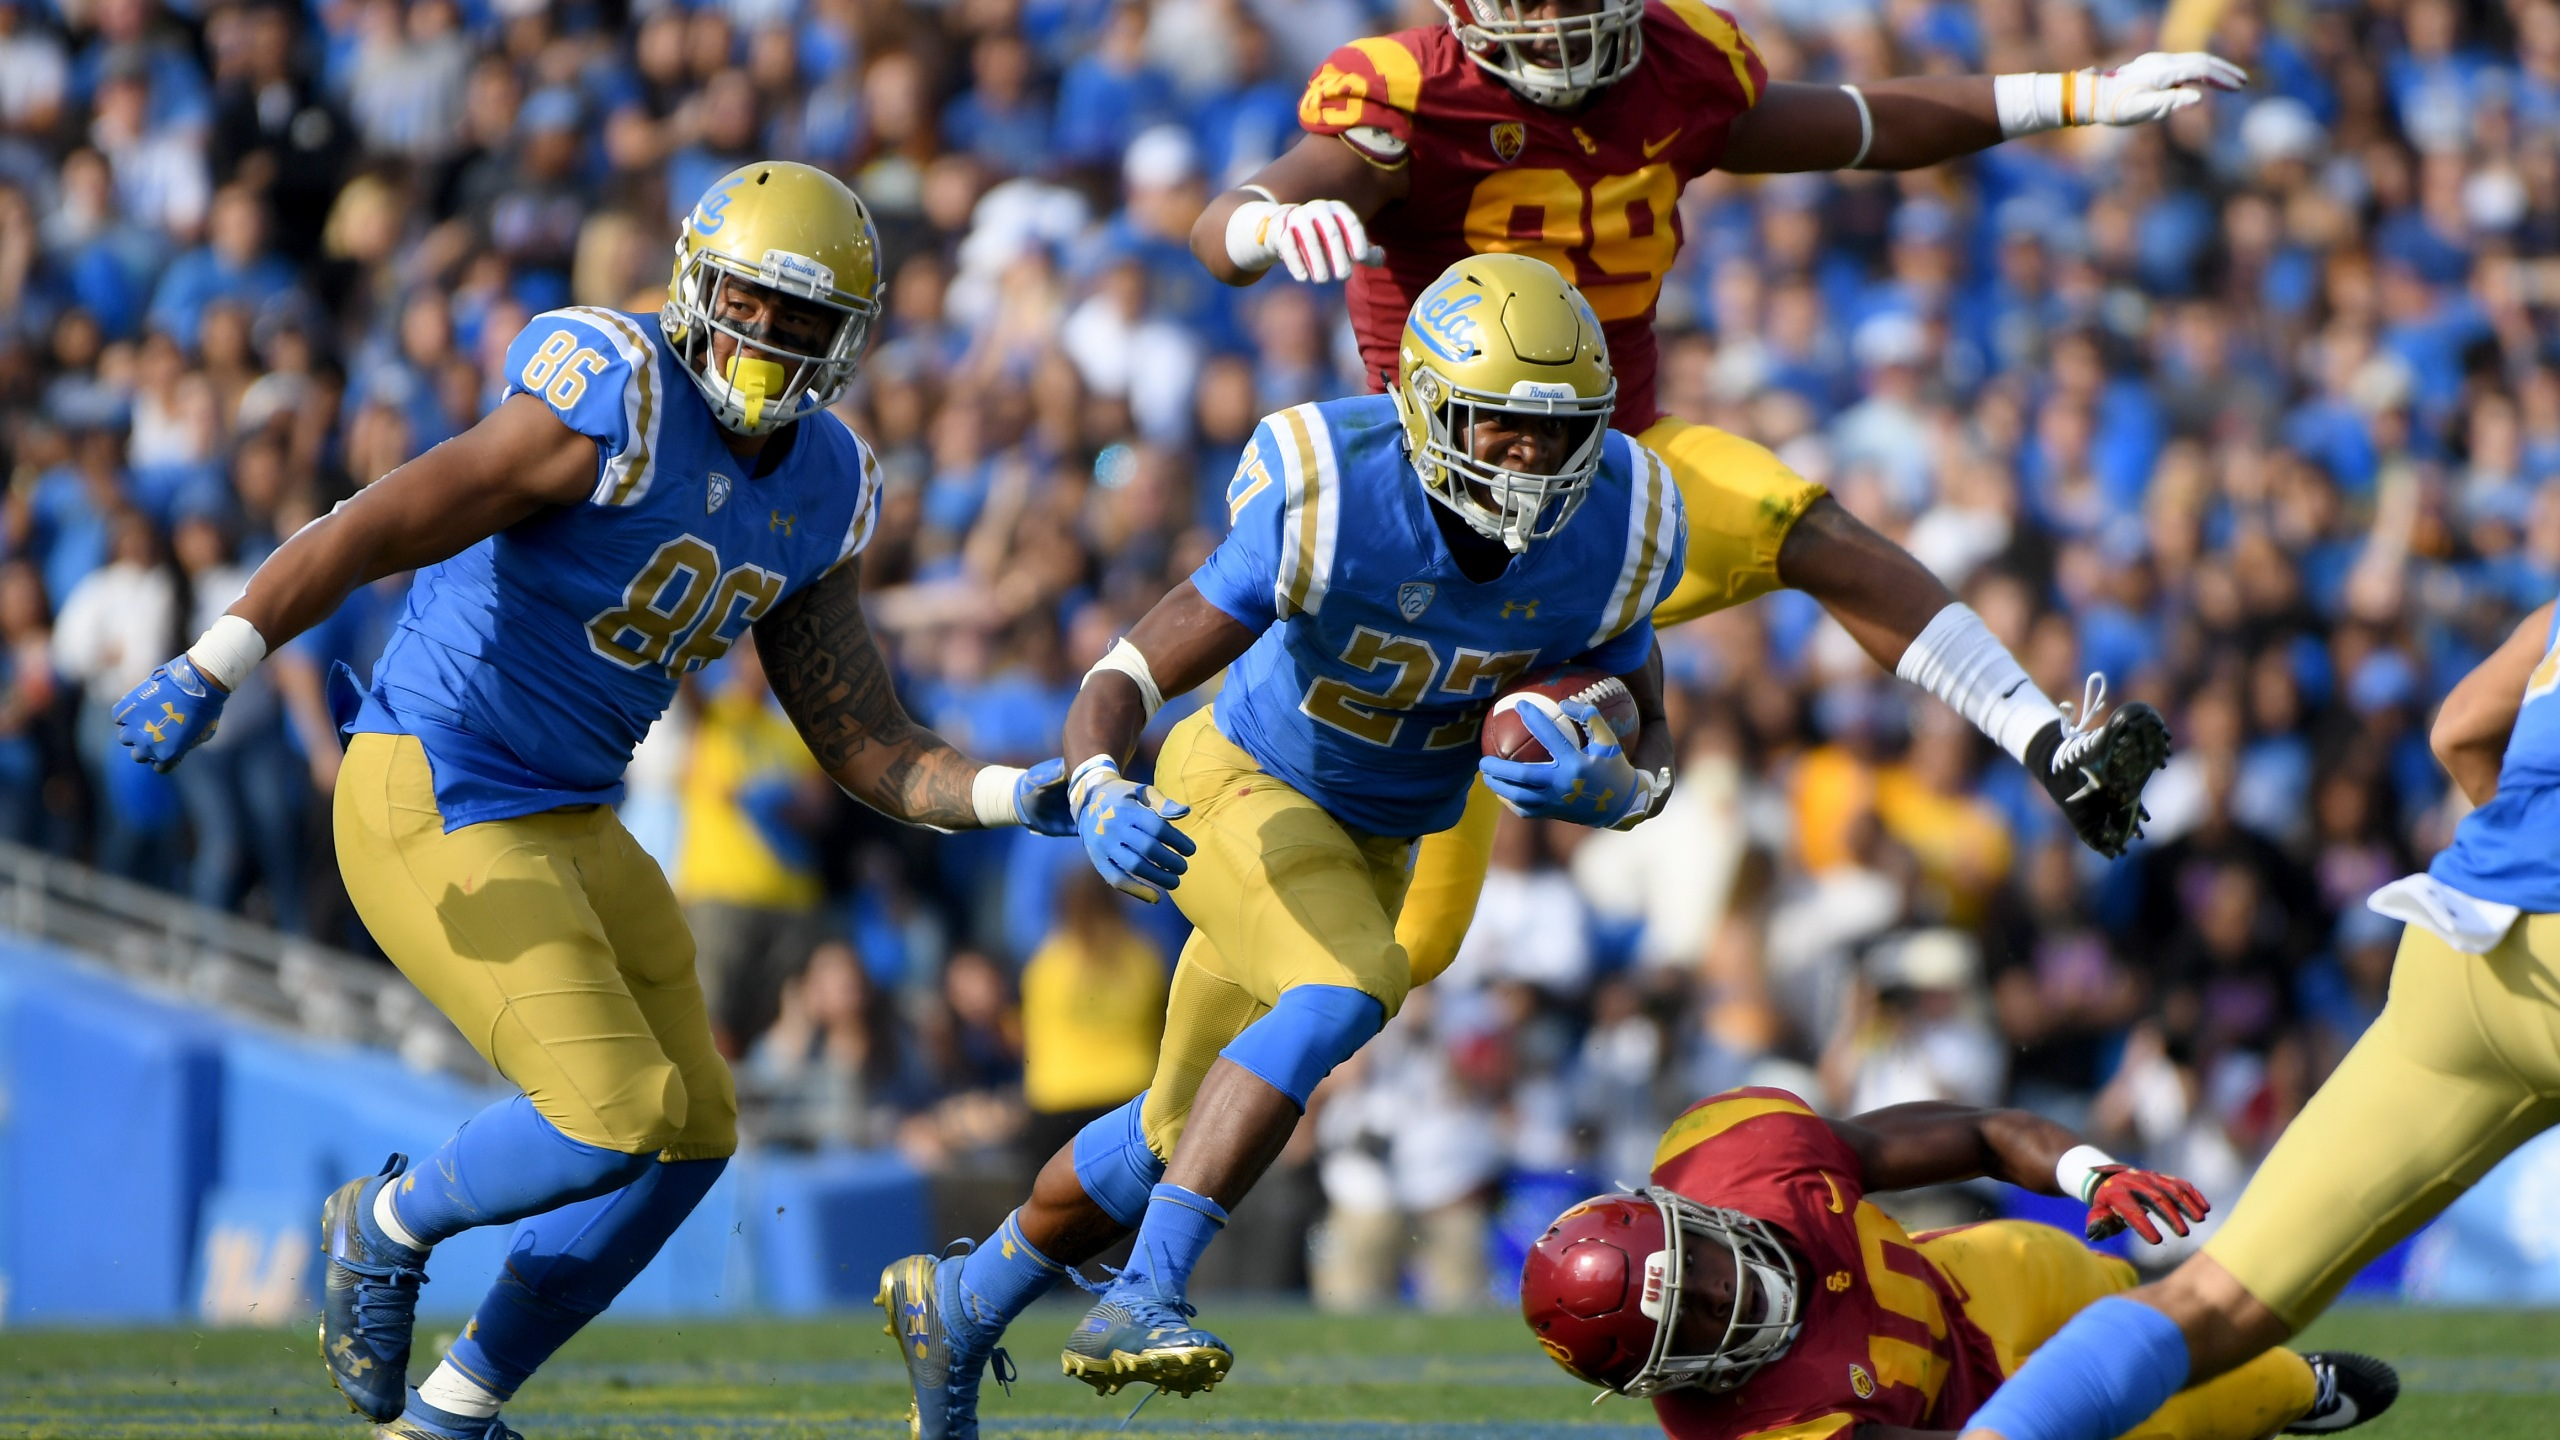 Joshua Kelley of the UCLA Bruins runs with Devin Asiasi during a match at the Rose Bowl on Nov. 17, 2018 in Pasadena. (Credit: Harry How/Getty Images)